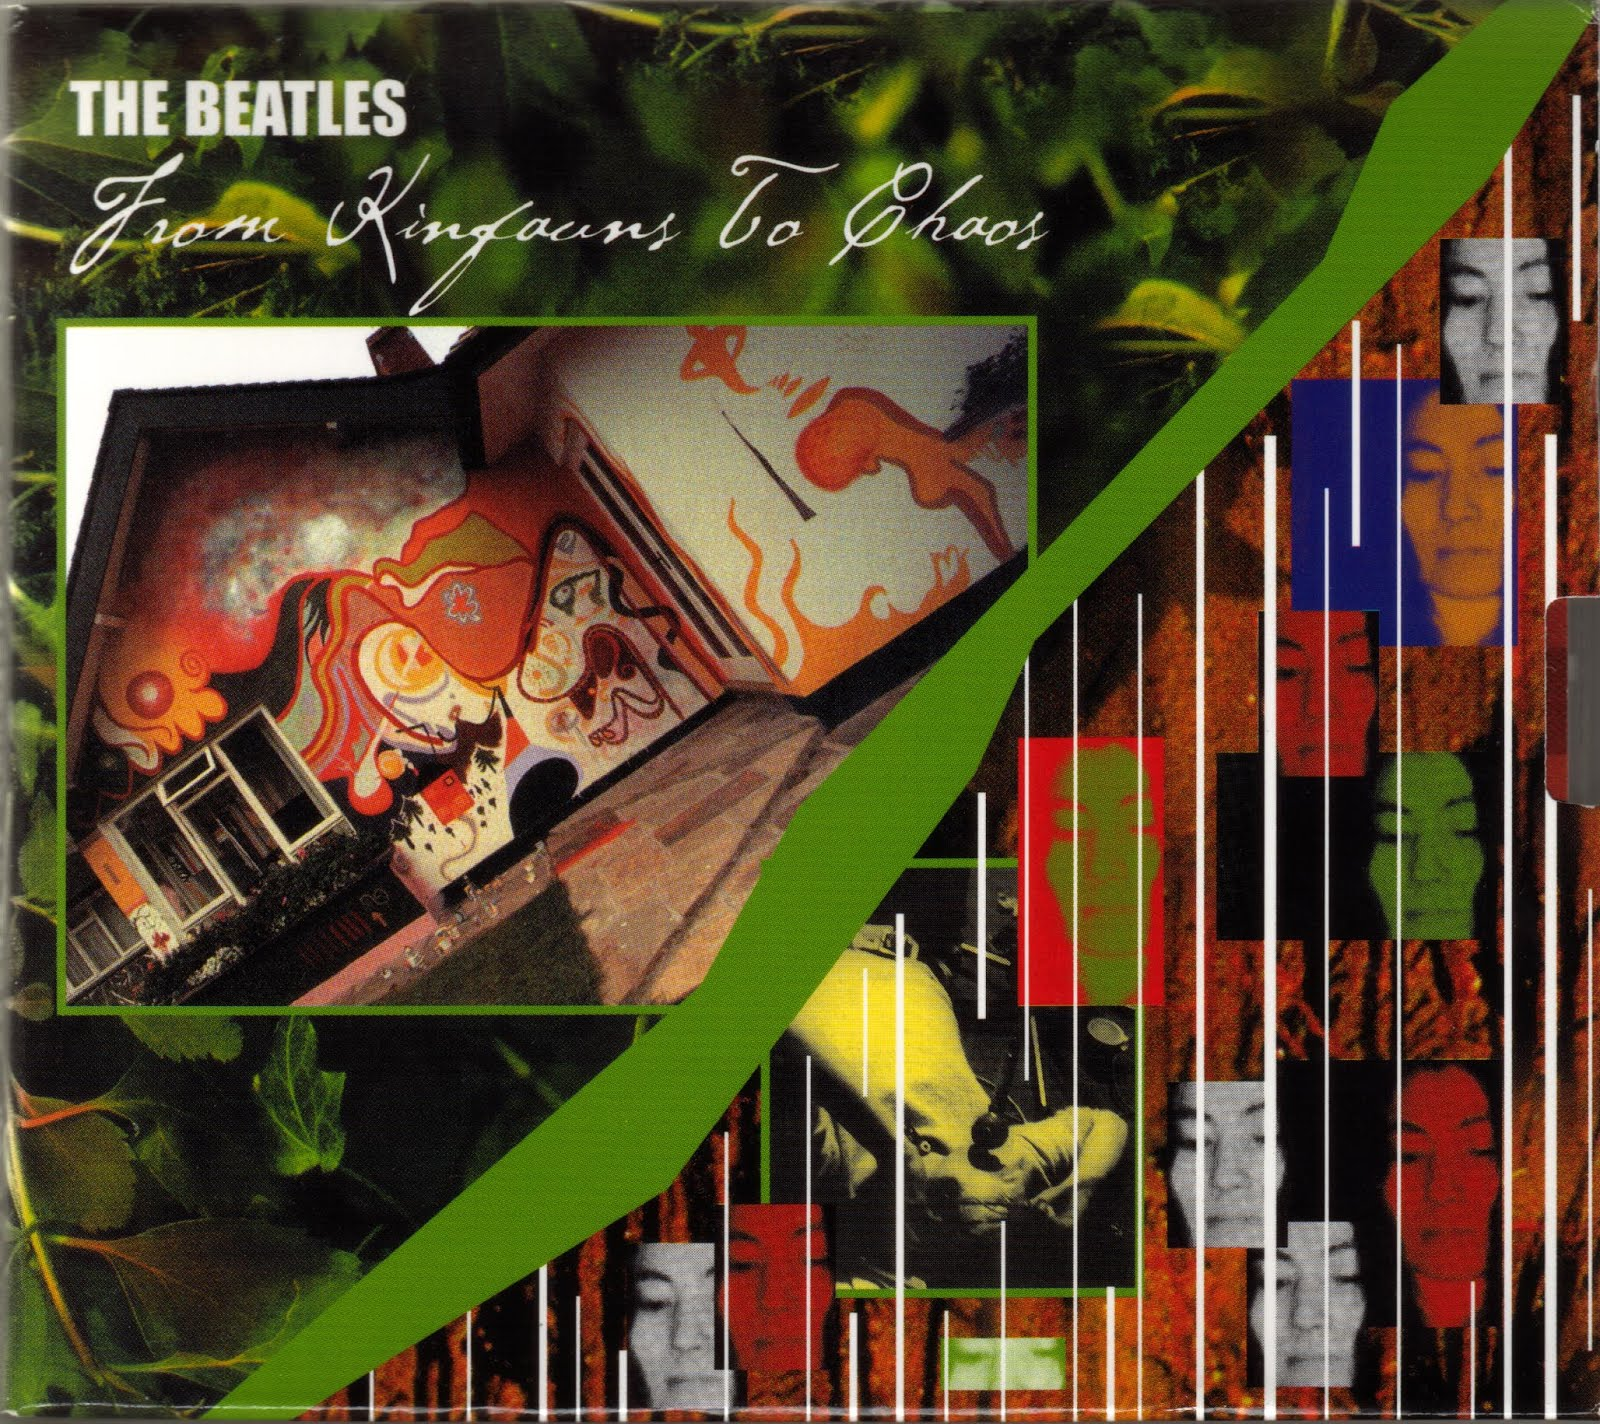 The Beatles Kinfauns Demos Download - gooworker